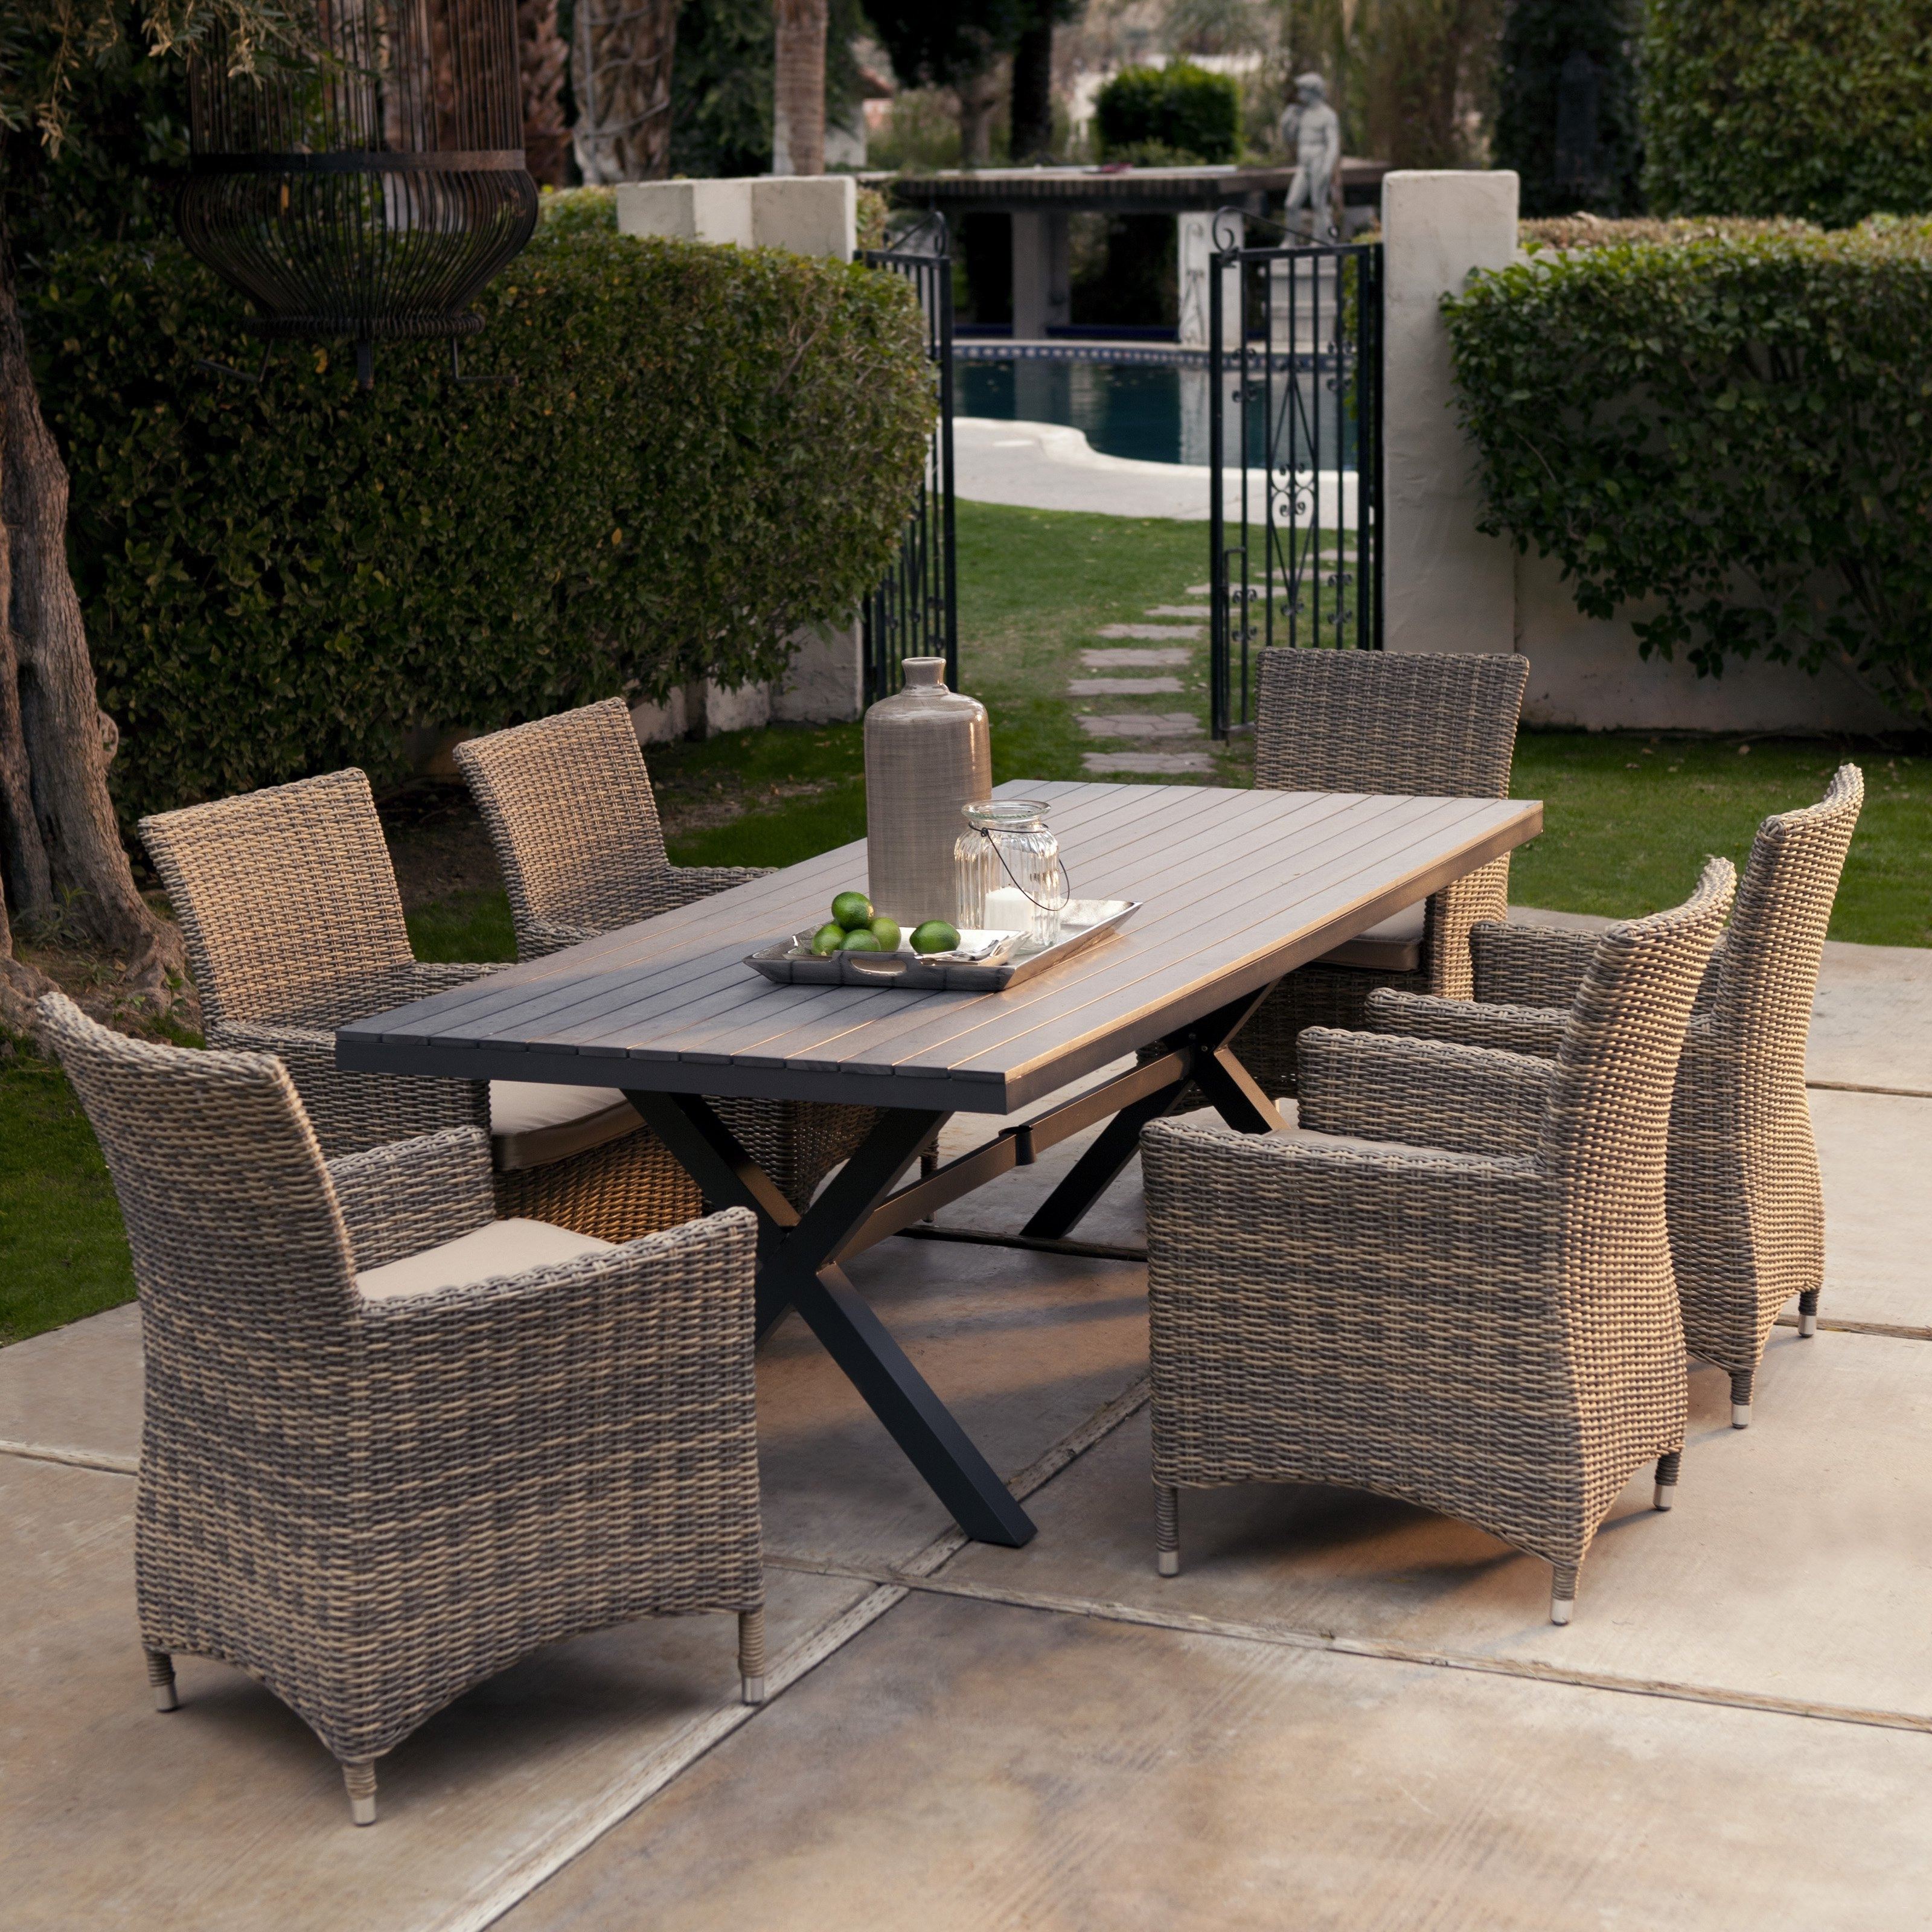 Outdoor Dining Sets With Swivel Chairs Elegant Chair Outdoor Patio Pertaining To Well Liked Patio Conversation Sets With Swivel Chairs (View 19 of 20)